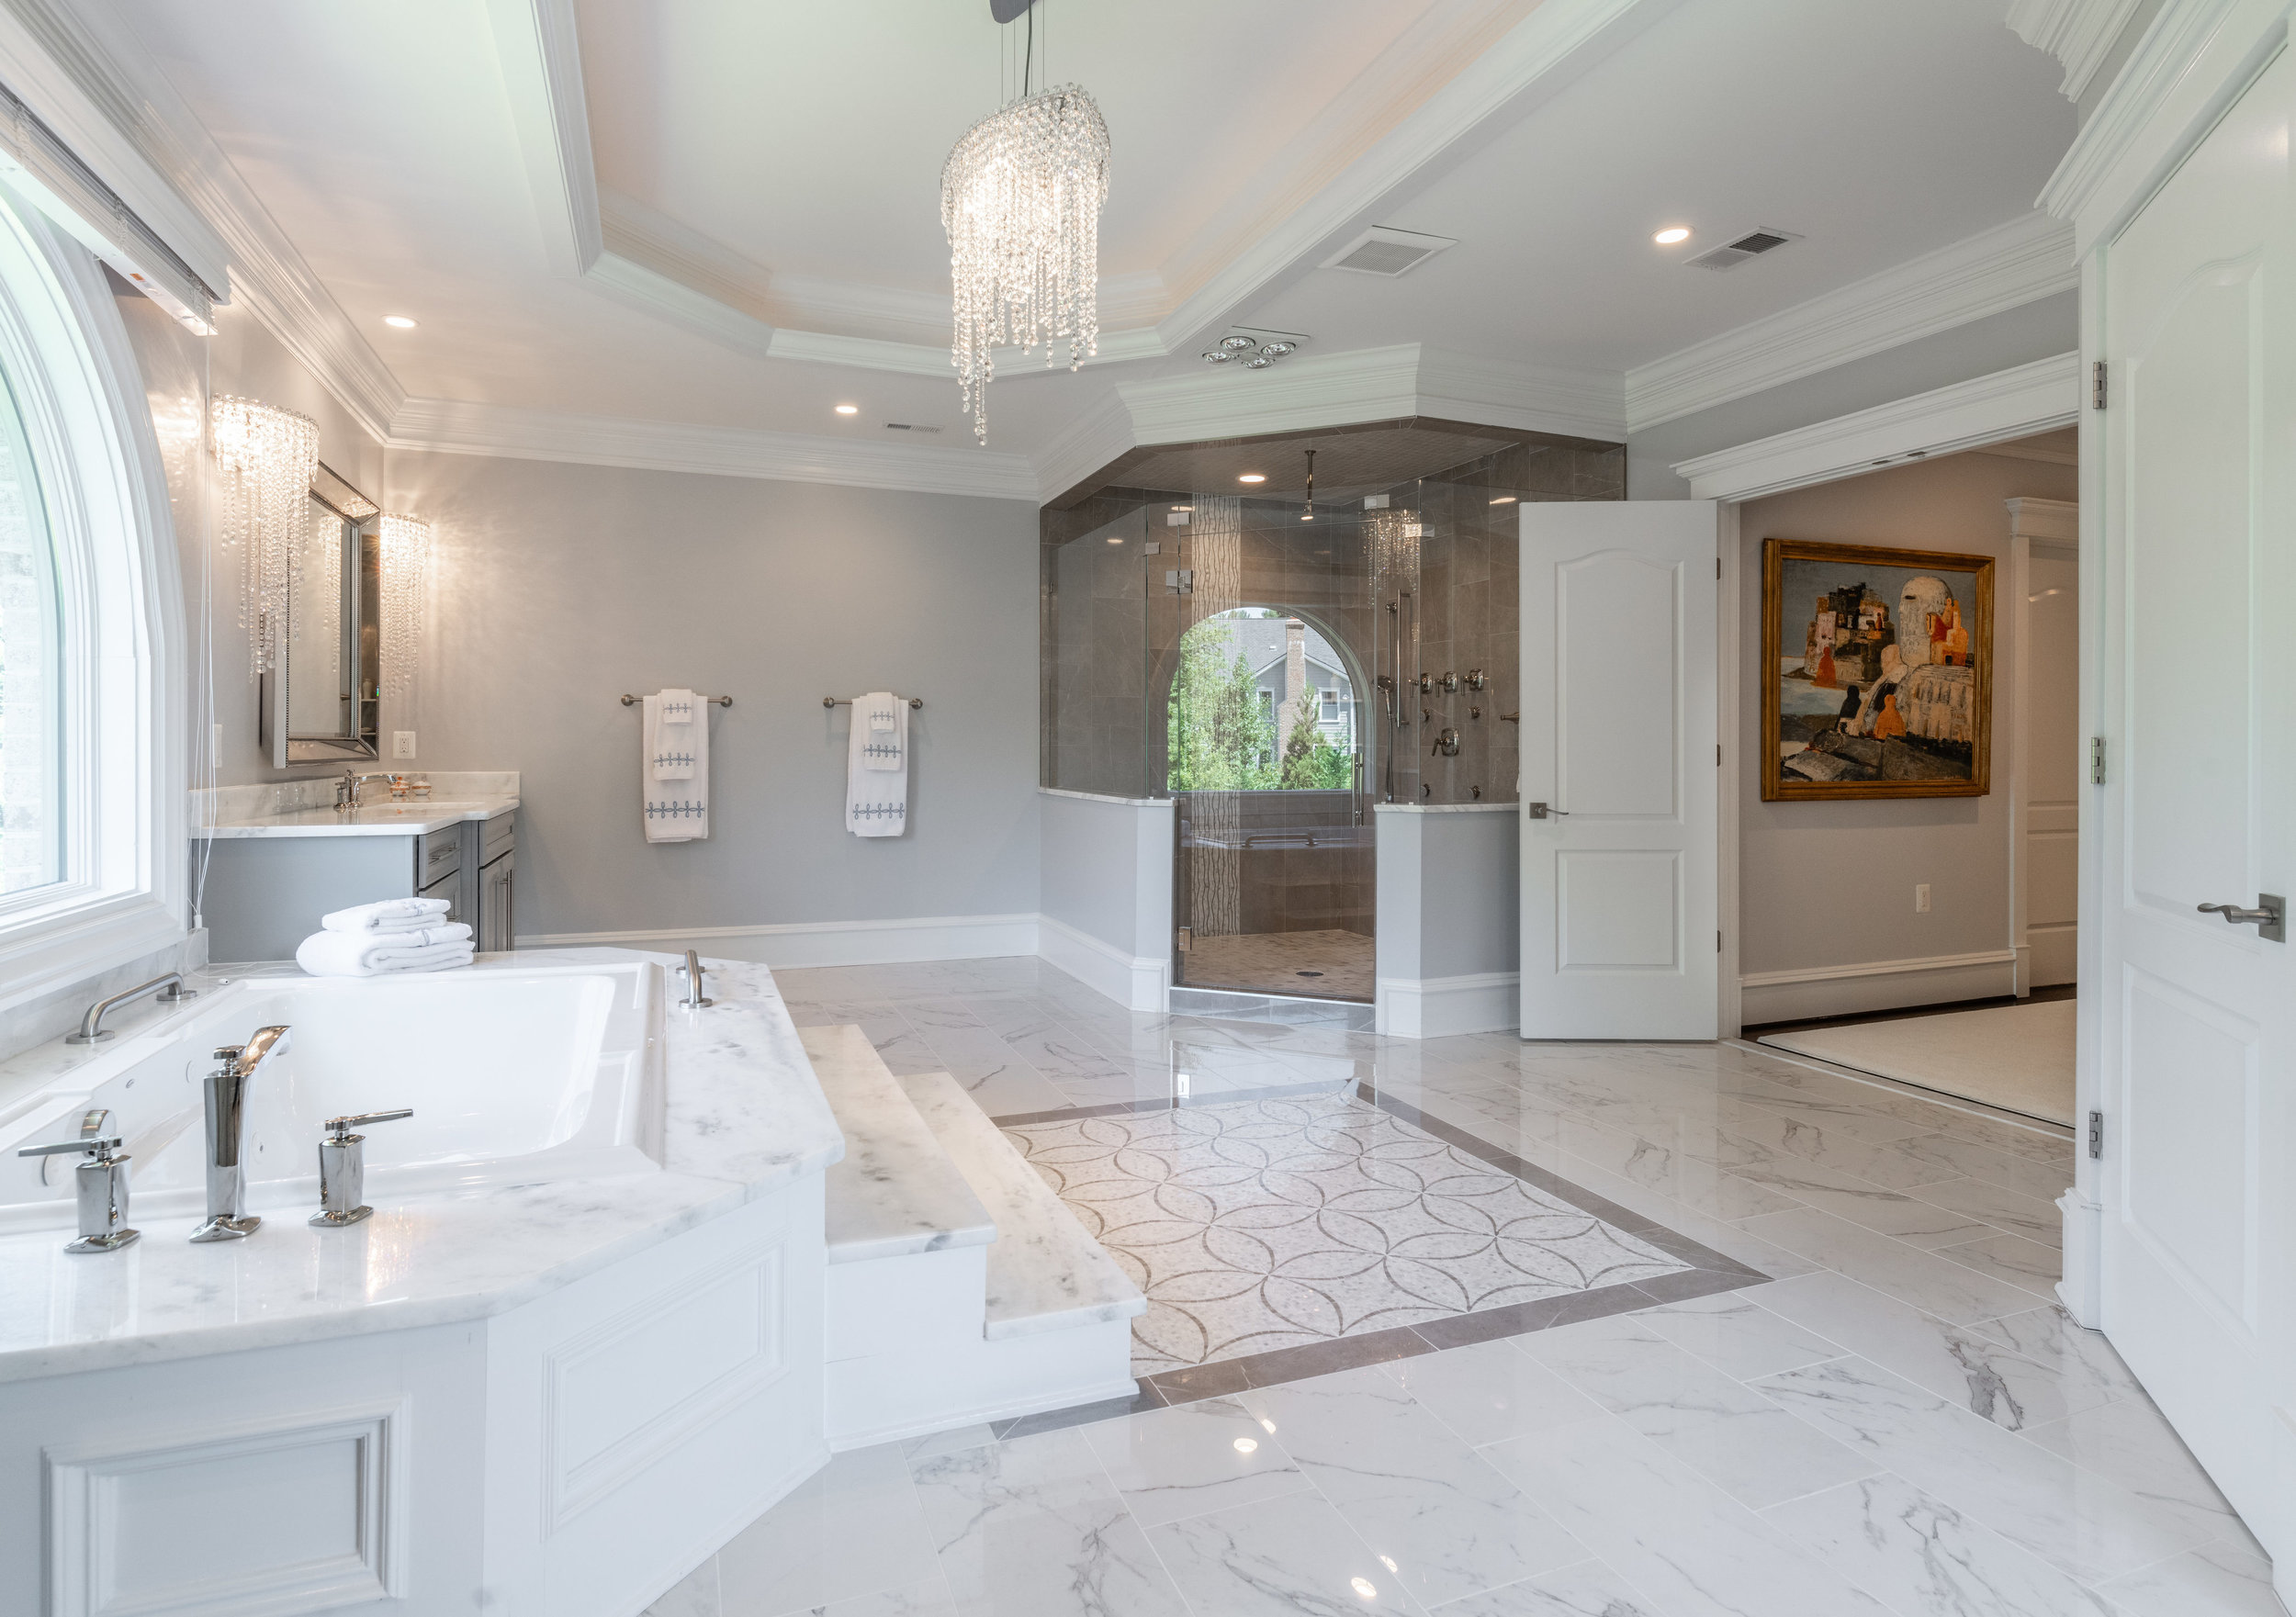 Master Bathroom with jetted tub and spacious frameless glass shower